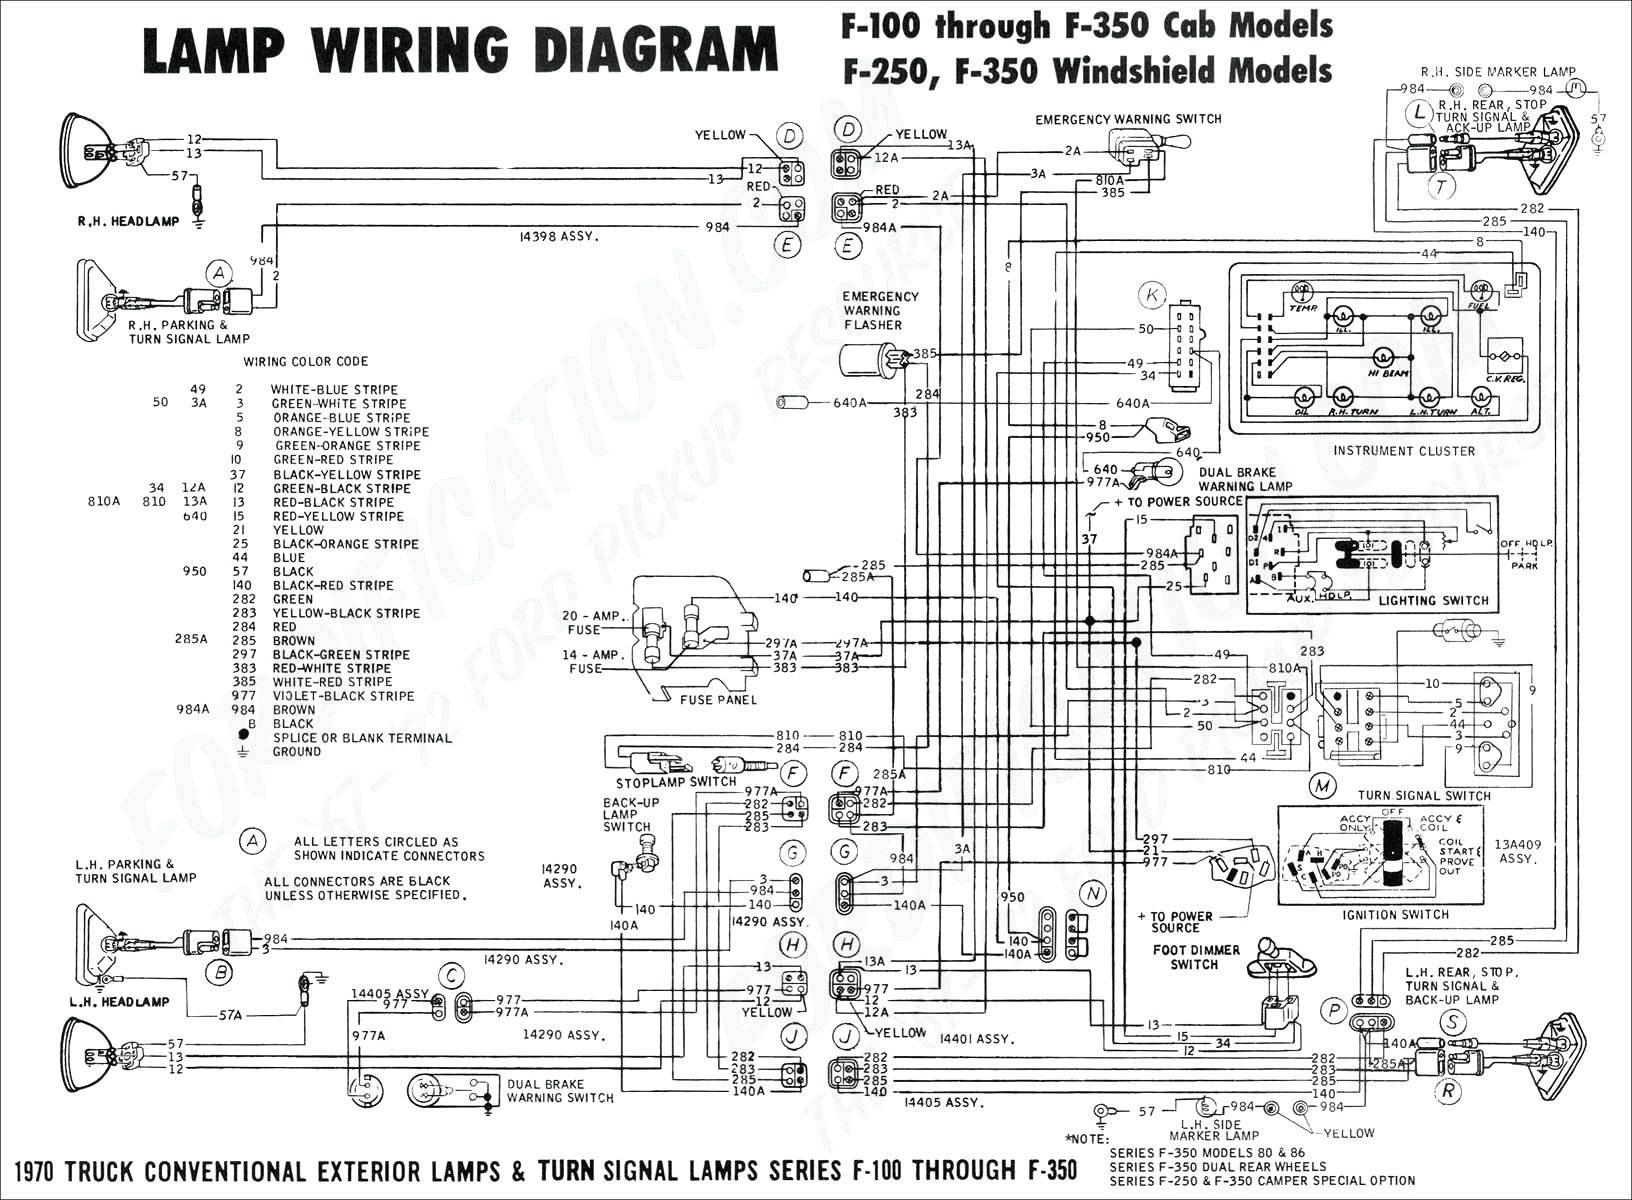 2000 Buick Lesabre Engine Diagram 2003 Buick Lesabre Radio Wiring Diagram Book F53 Wiring Radio Of 2000 Buick Lesabre Engine Diagram Free Buick Wiring Diagrams Data Schematics Wiring Diagram •